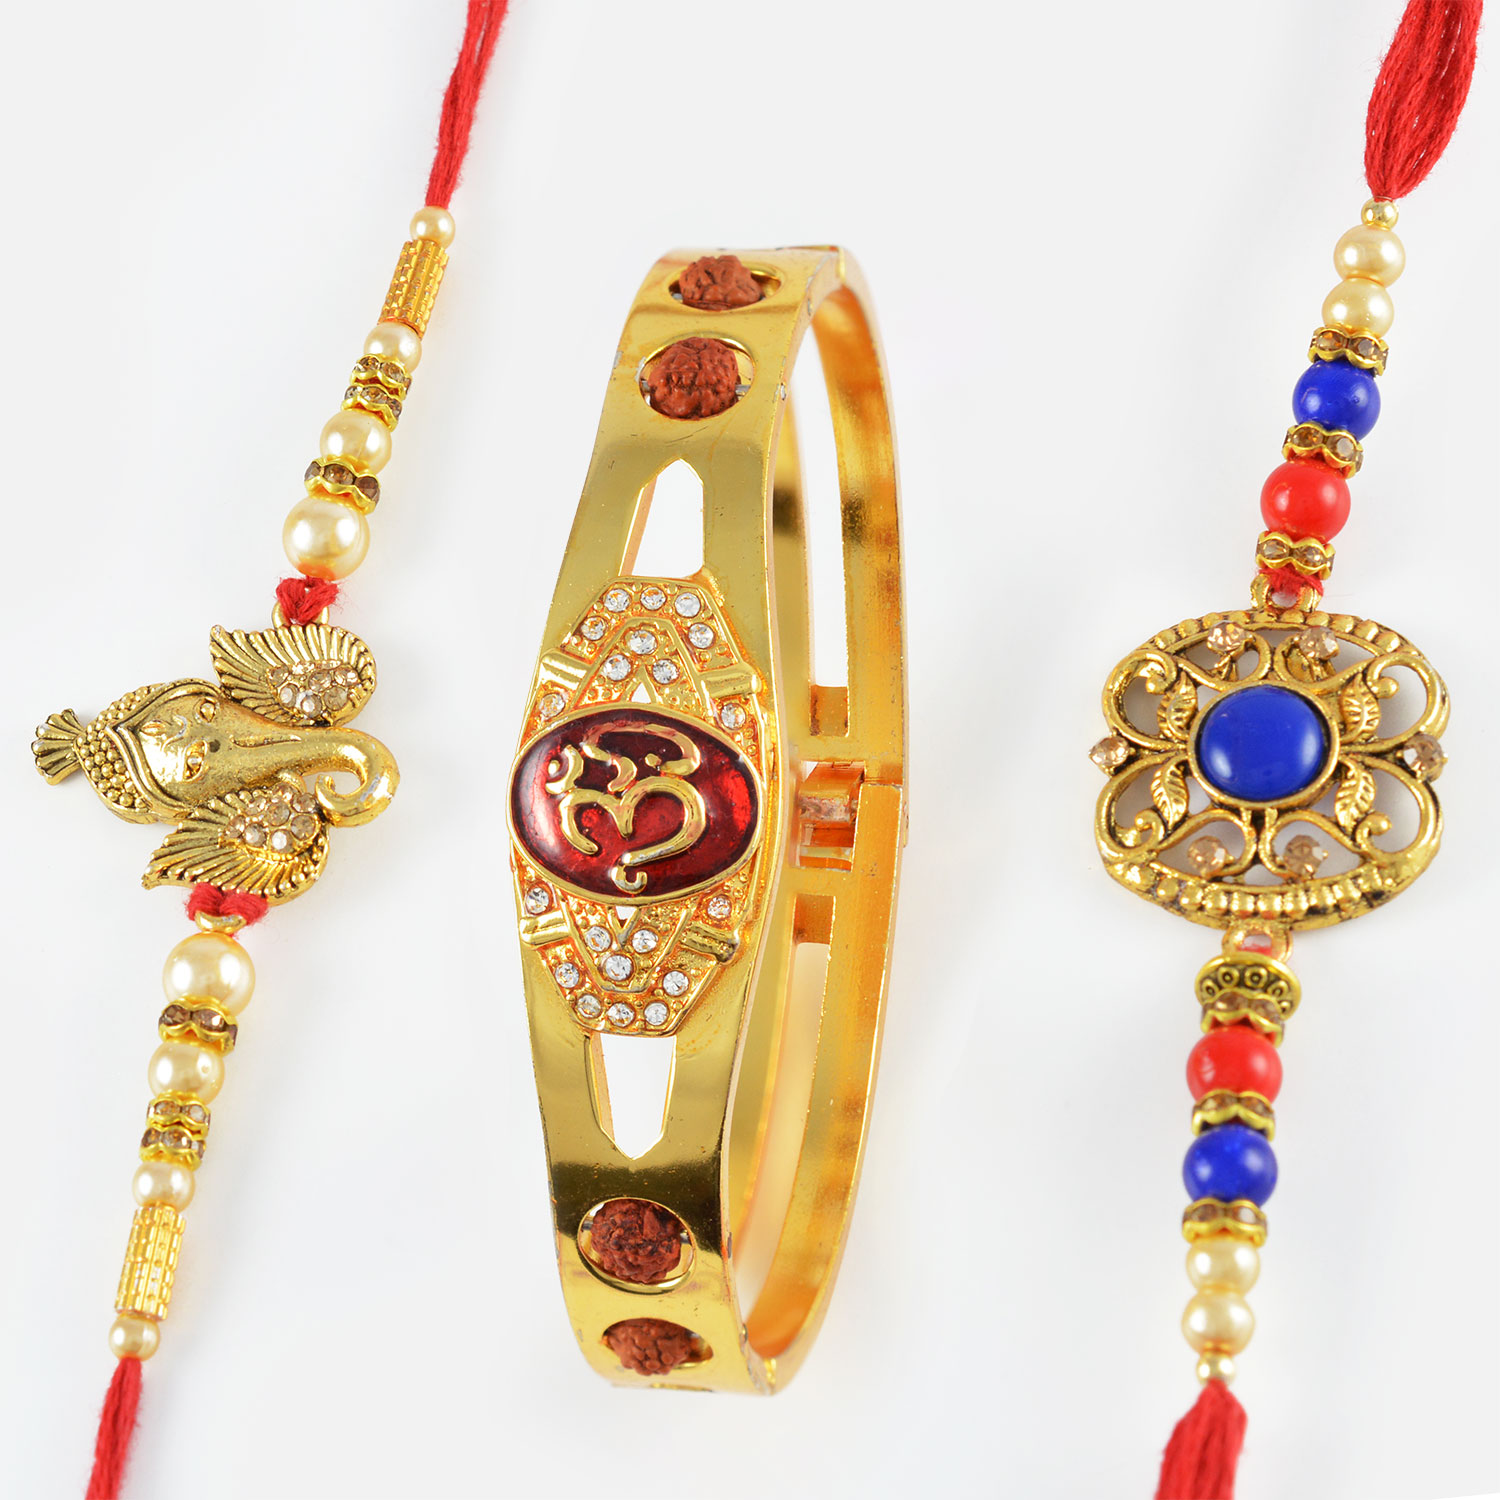 Stunning OM Bracelet along with Golden Ganpati and Blue Beads Rakhi Set of 3